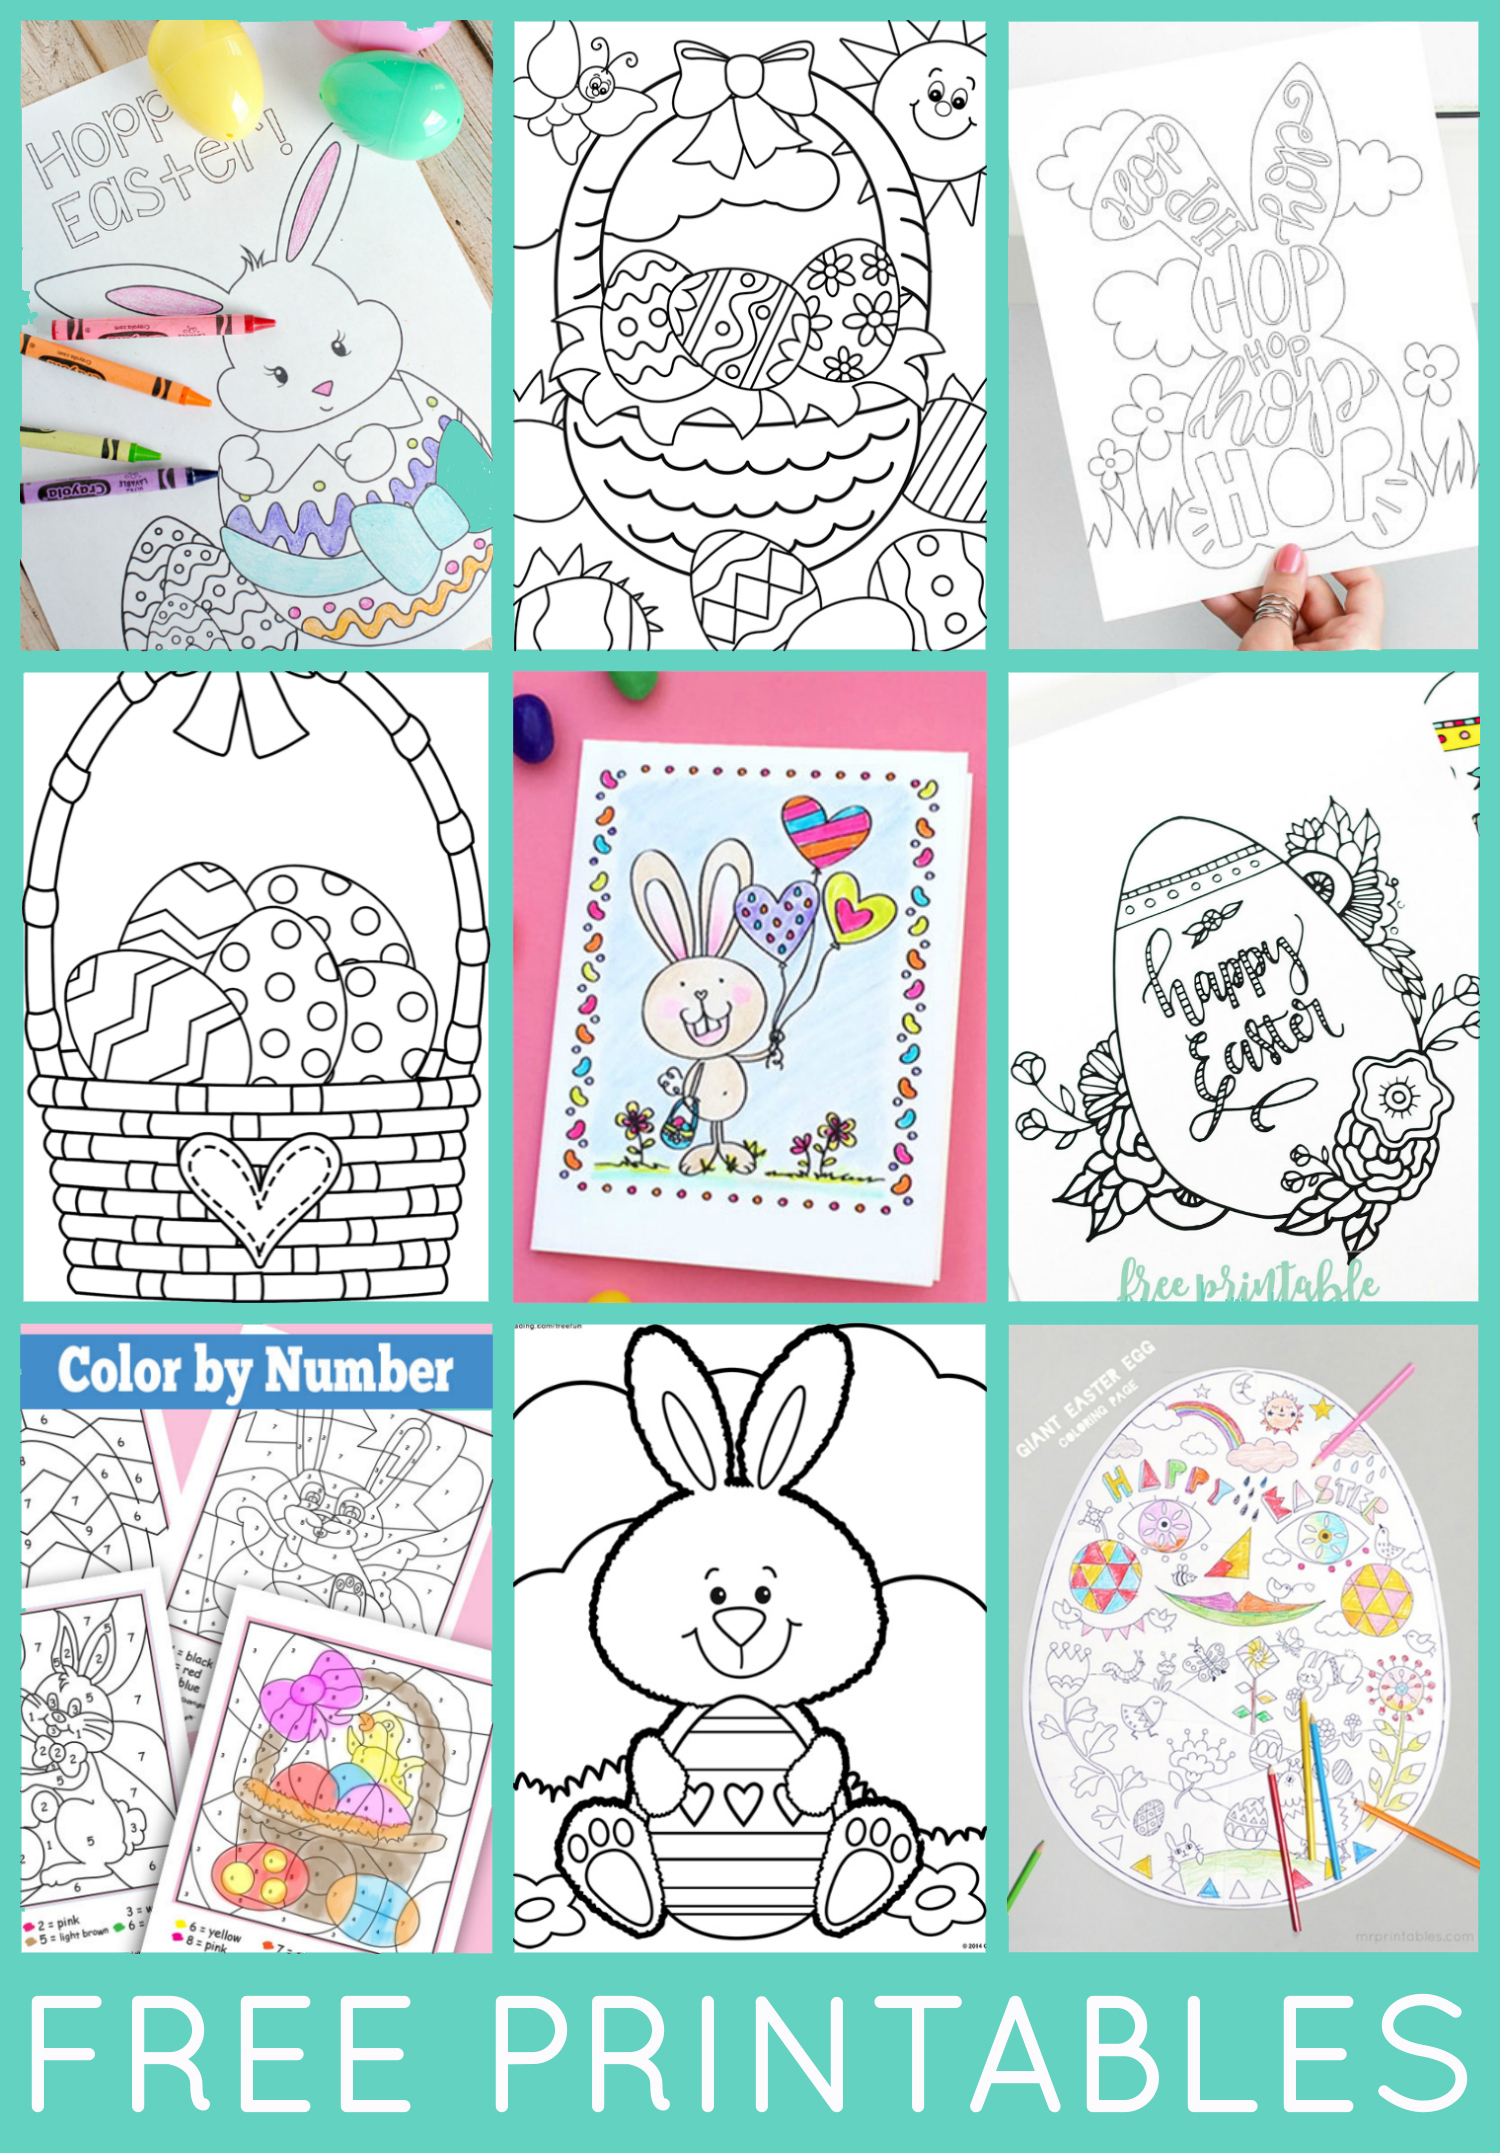 Free Easter Coloring Pages - Happiness Is Homemade - Free Printable Coloring Pages Easter Basket